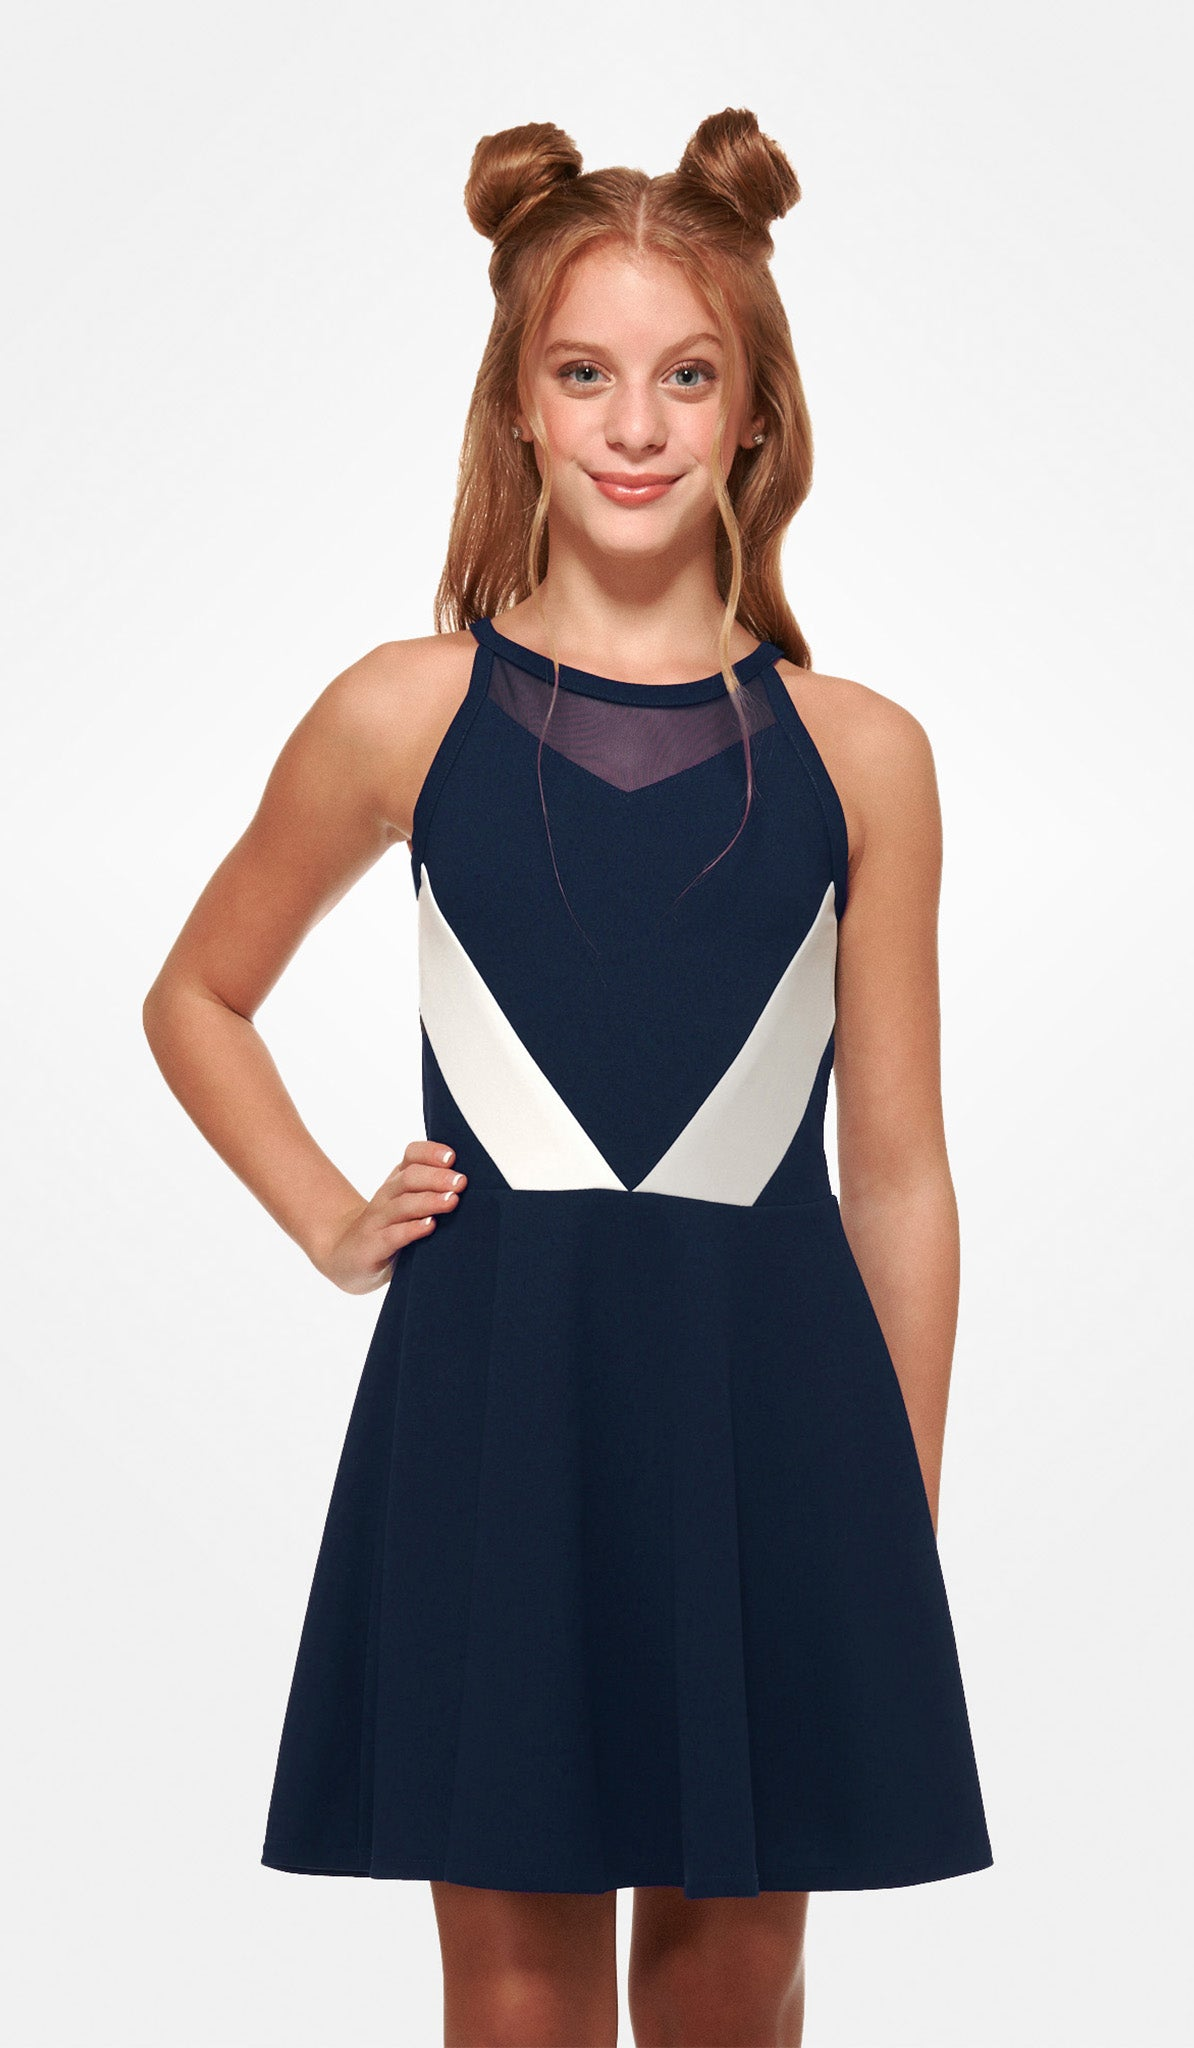 THE NATALIE DRESS - Sallymiller.com - [variant title] - | Event & Party Dresses for Tween Girls & Juniors | Weddings Dresses, Bat Mitzvah Dresses, Sweet Sixteen Dresses, Graduation Dresses, Birthday Party Dresses, Bar Mitzvah Dresses, Cotillion Dresses